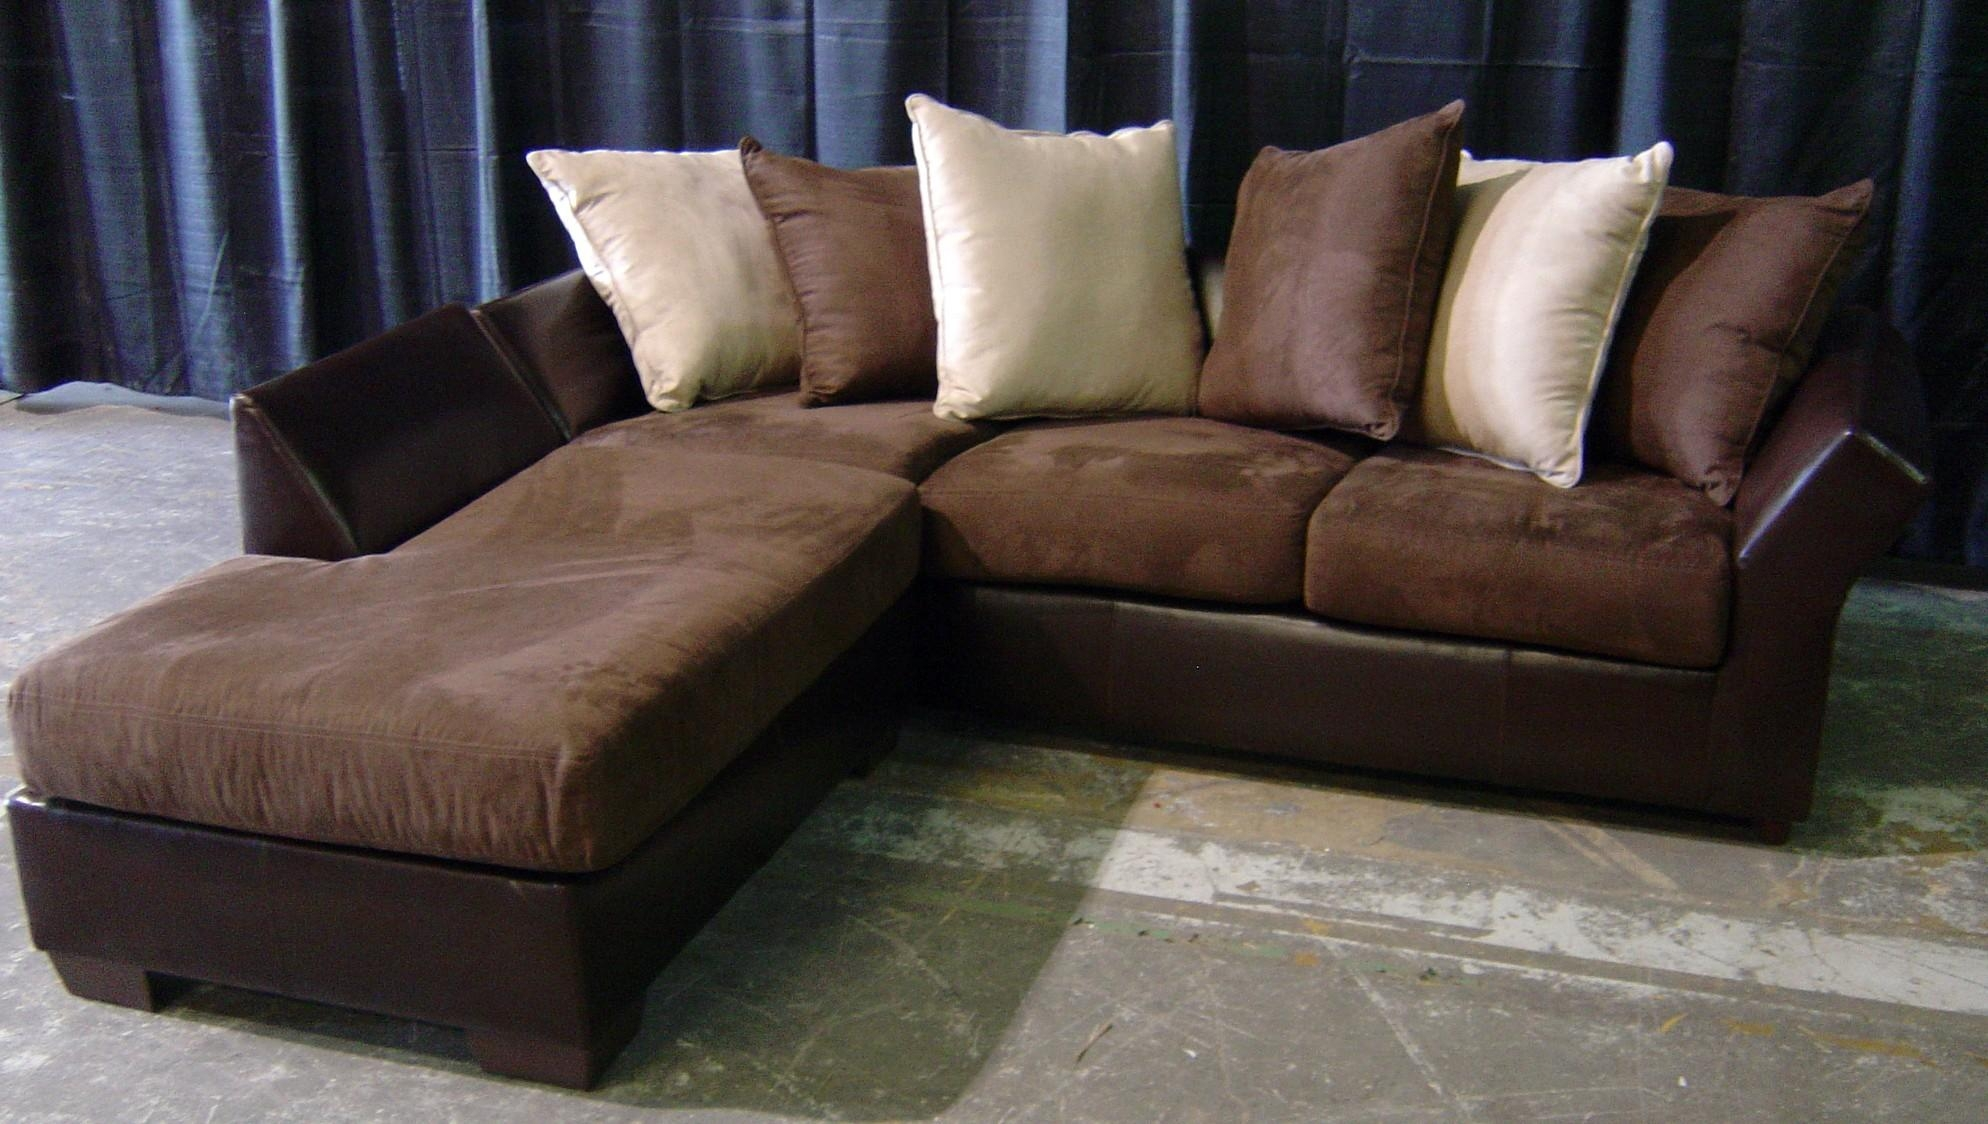 Leather And Suede Sectional Sofa – Leather Sectional Sofa Pertaining To Leather And Suede Sectional Sofa (Image 16 of 20)